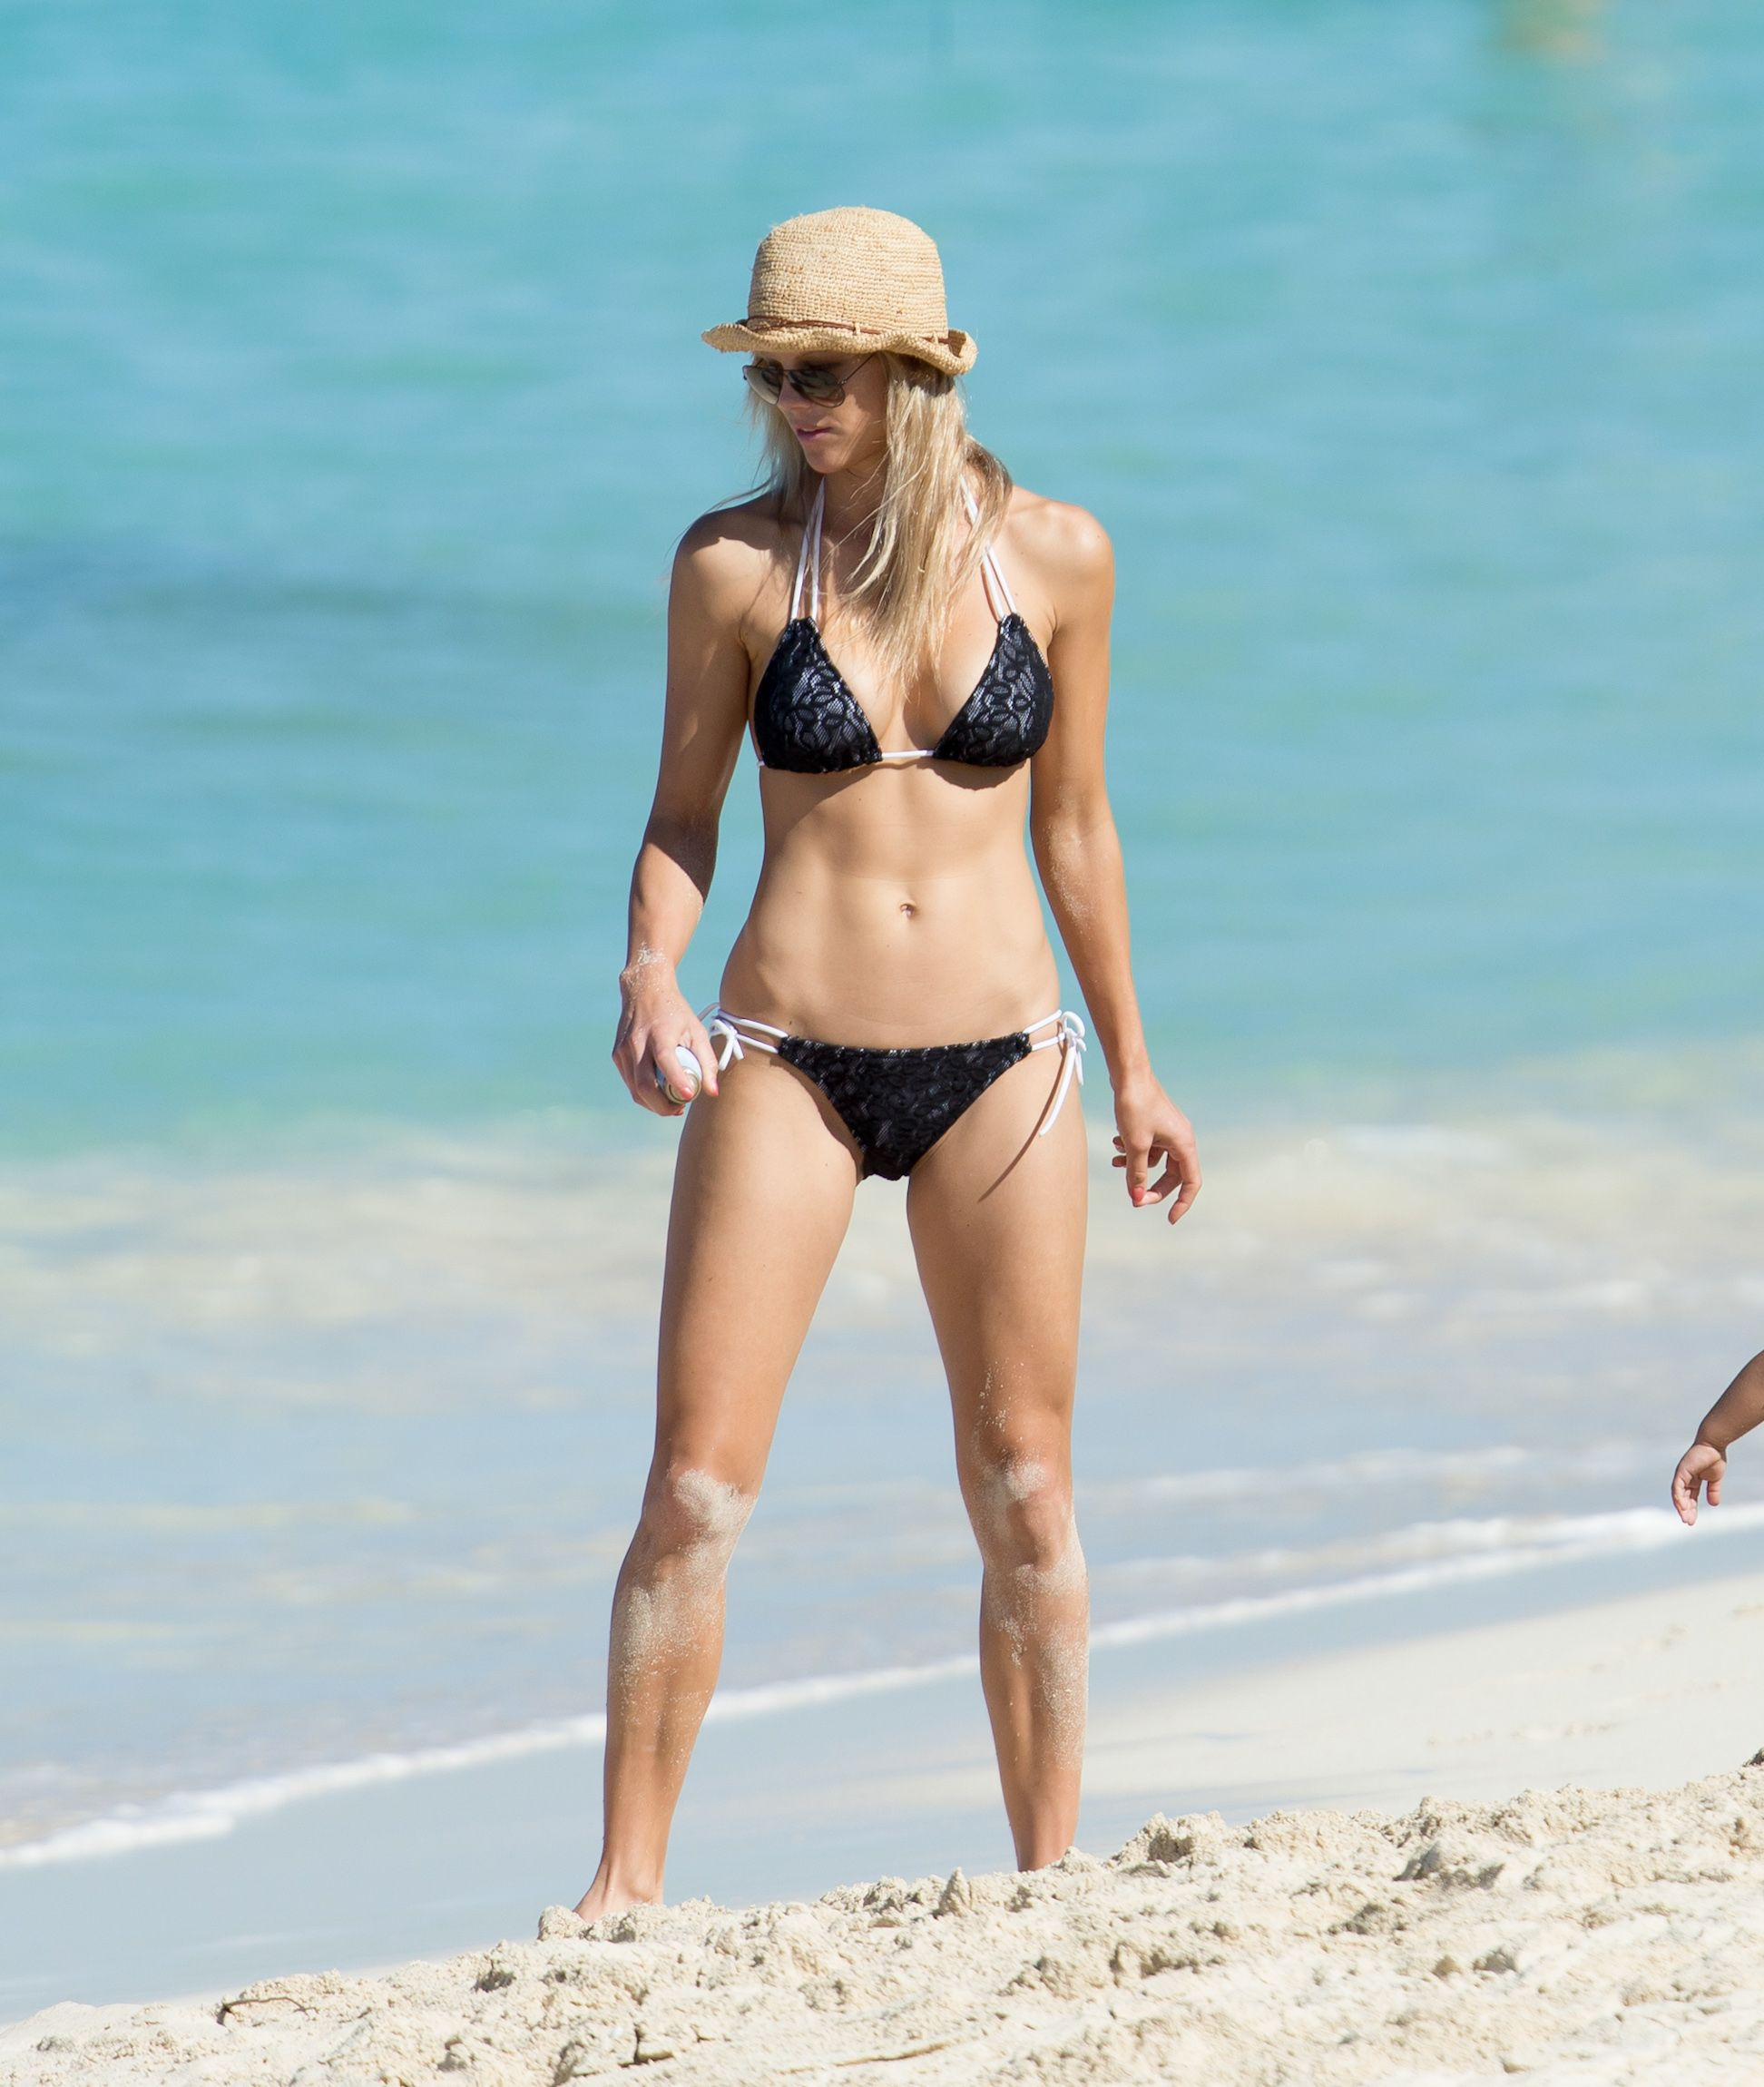 Designer of elin nordegren white bikini photo 367